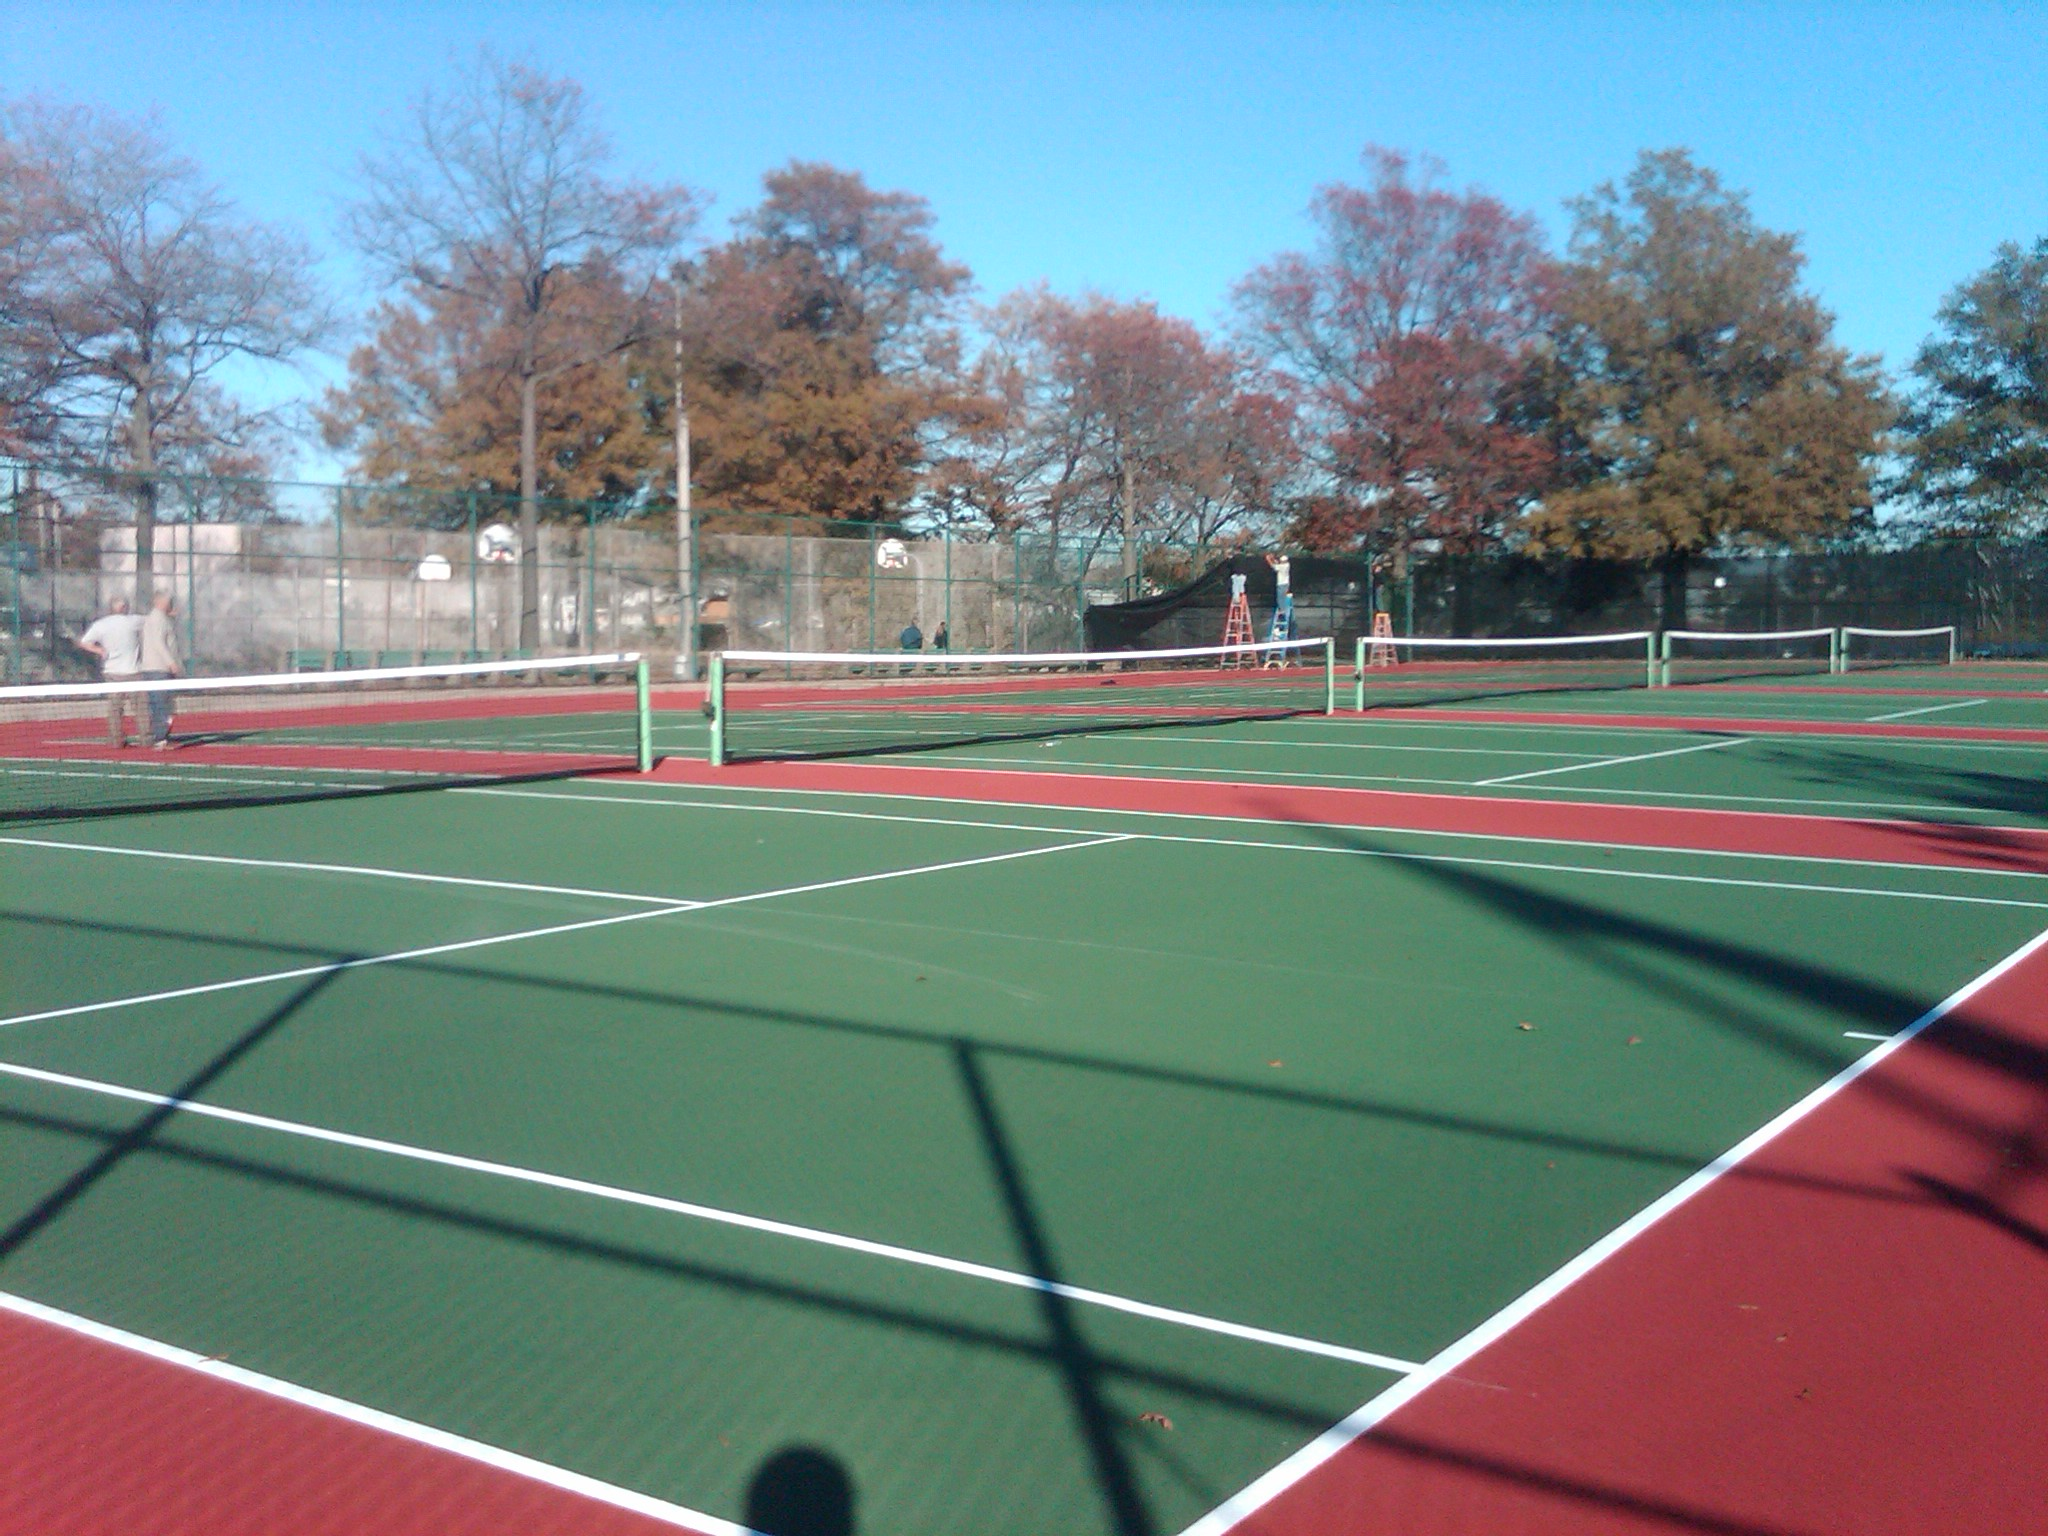 Newly-restored tennis courts at Frank Charles Park.